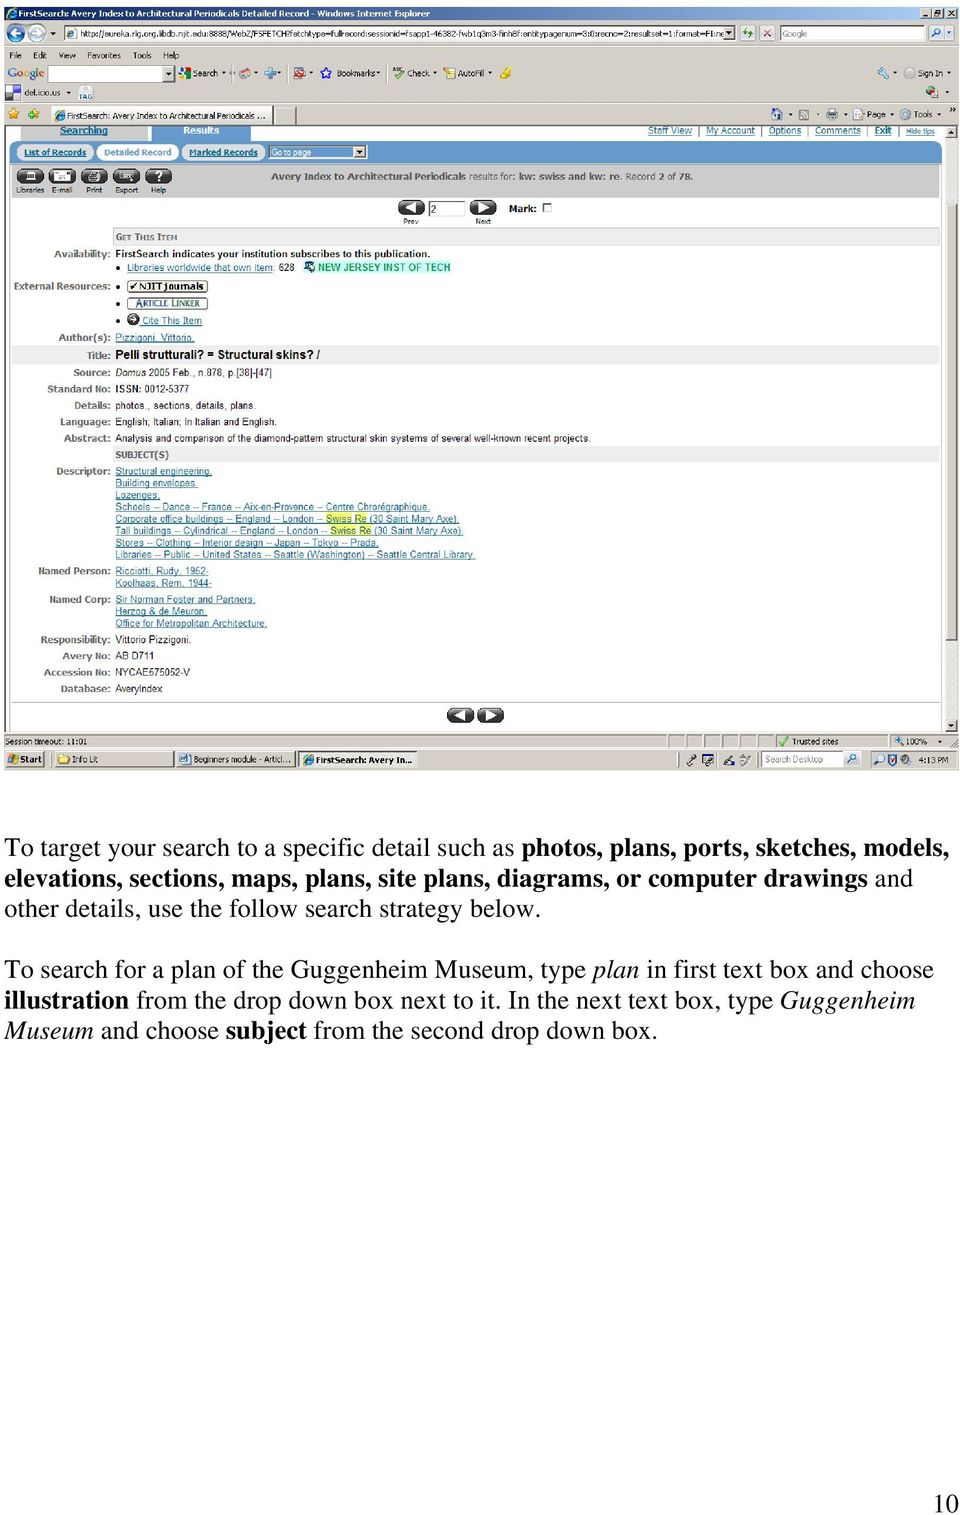 To search for a plan of the Guggenheim Museum, type plan in first text box and choose illustration from the drop